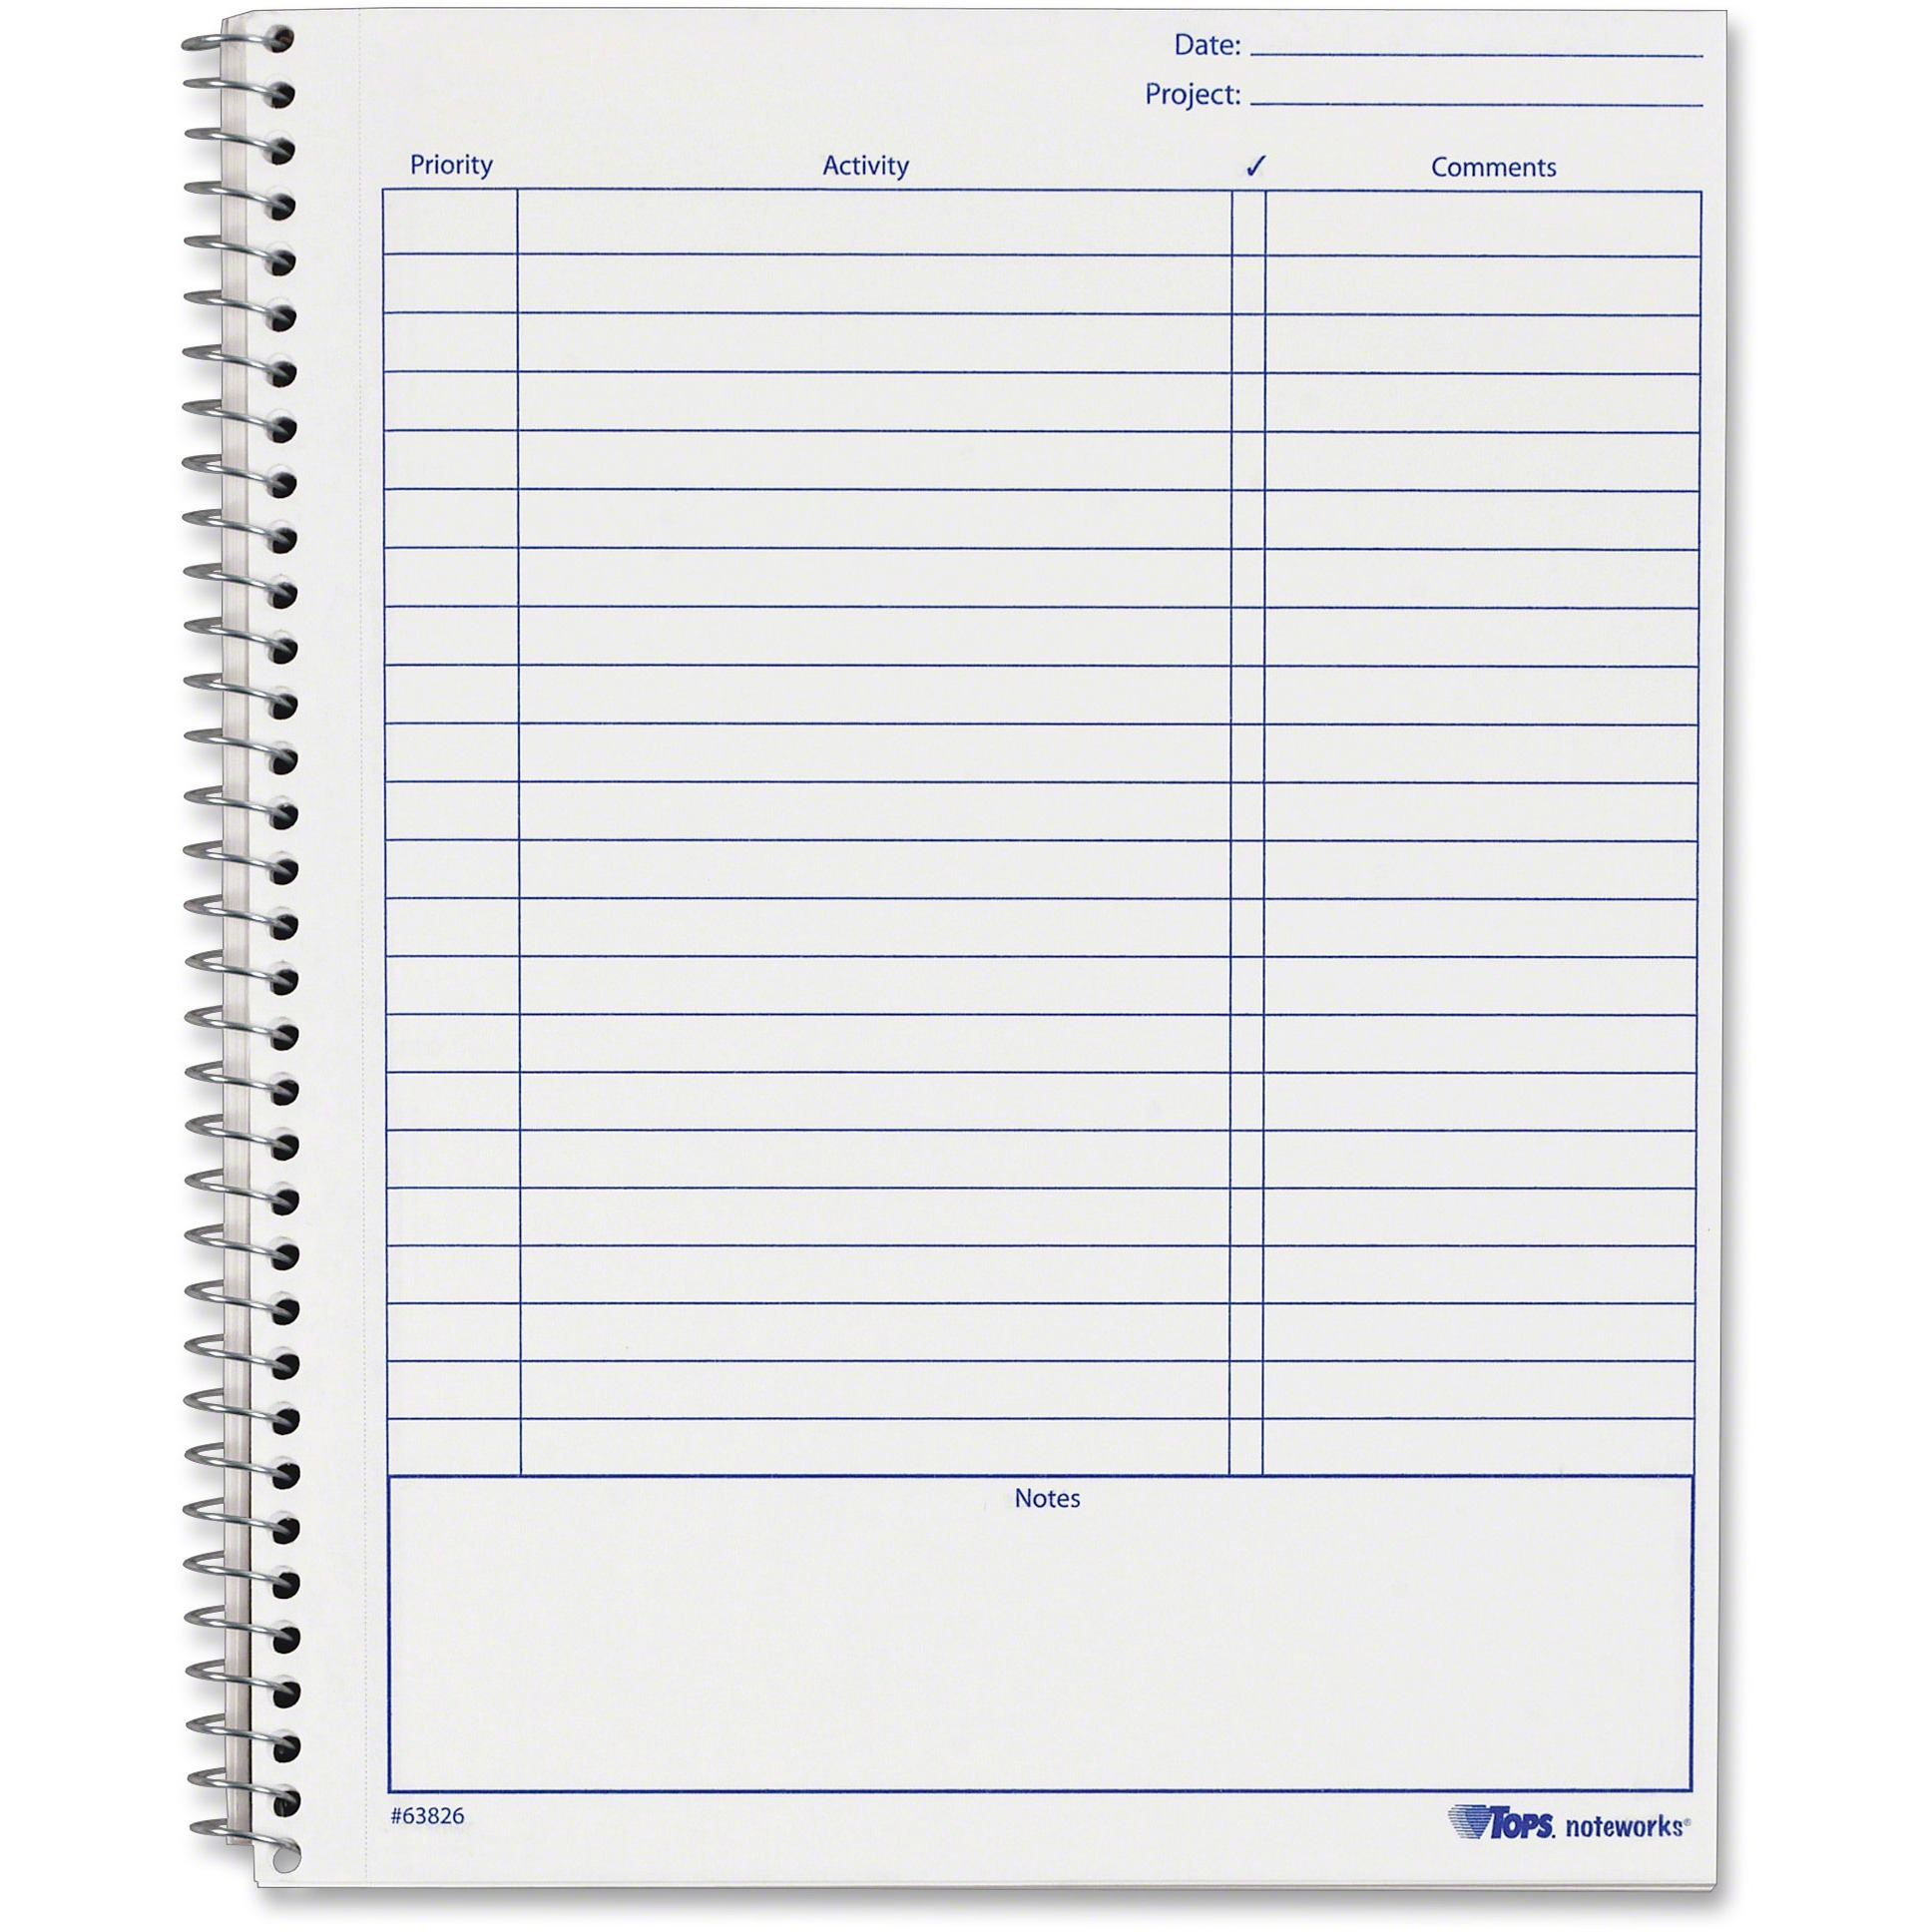 TOPS, TOP63826, Noteworks Project Planner, 1 Each